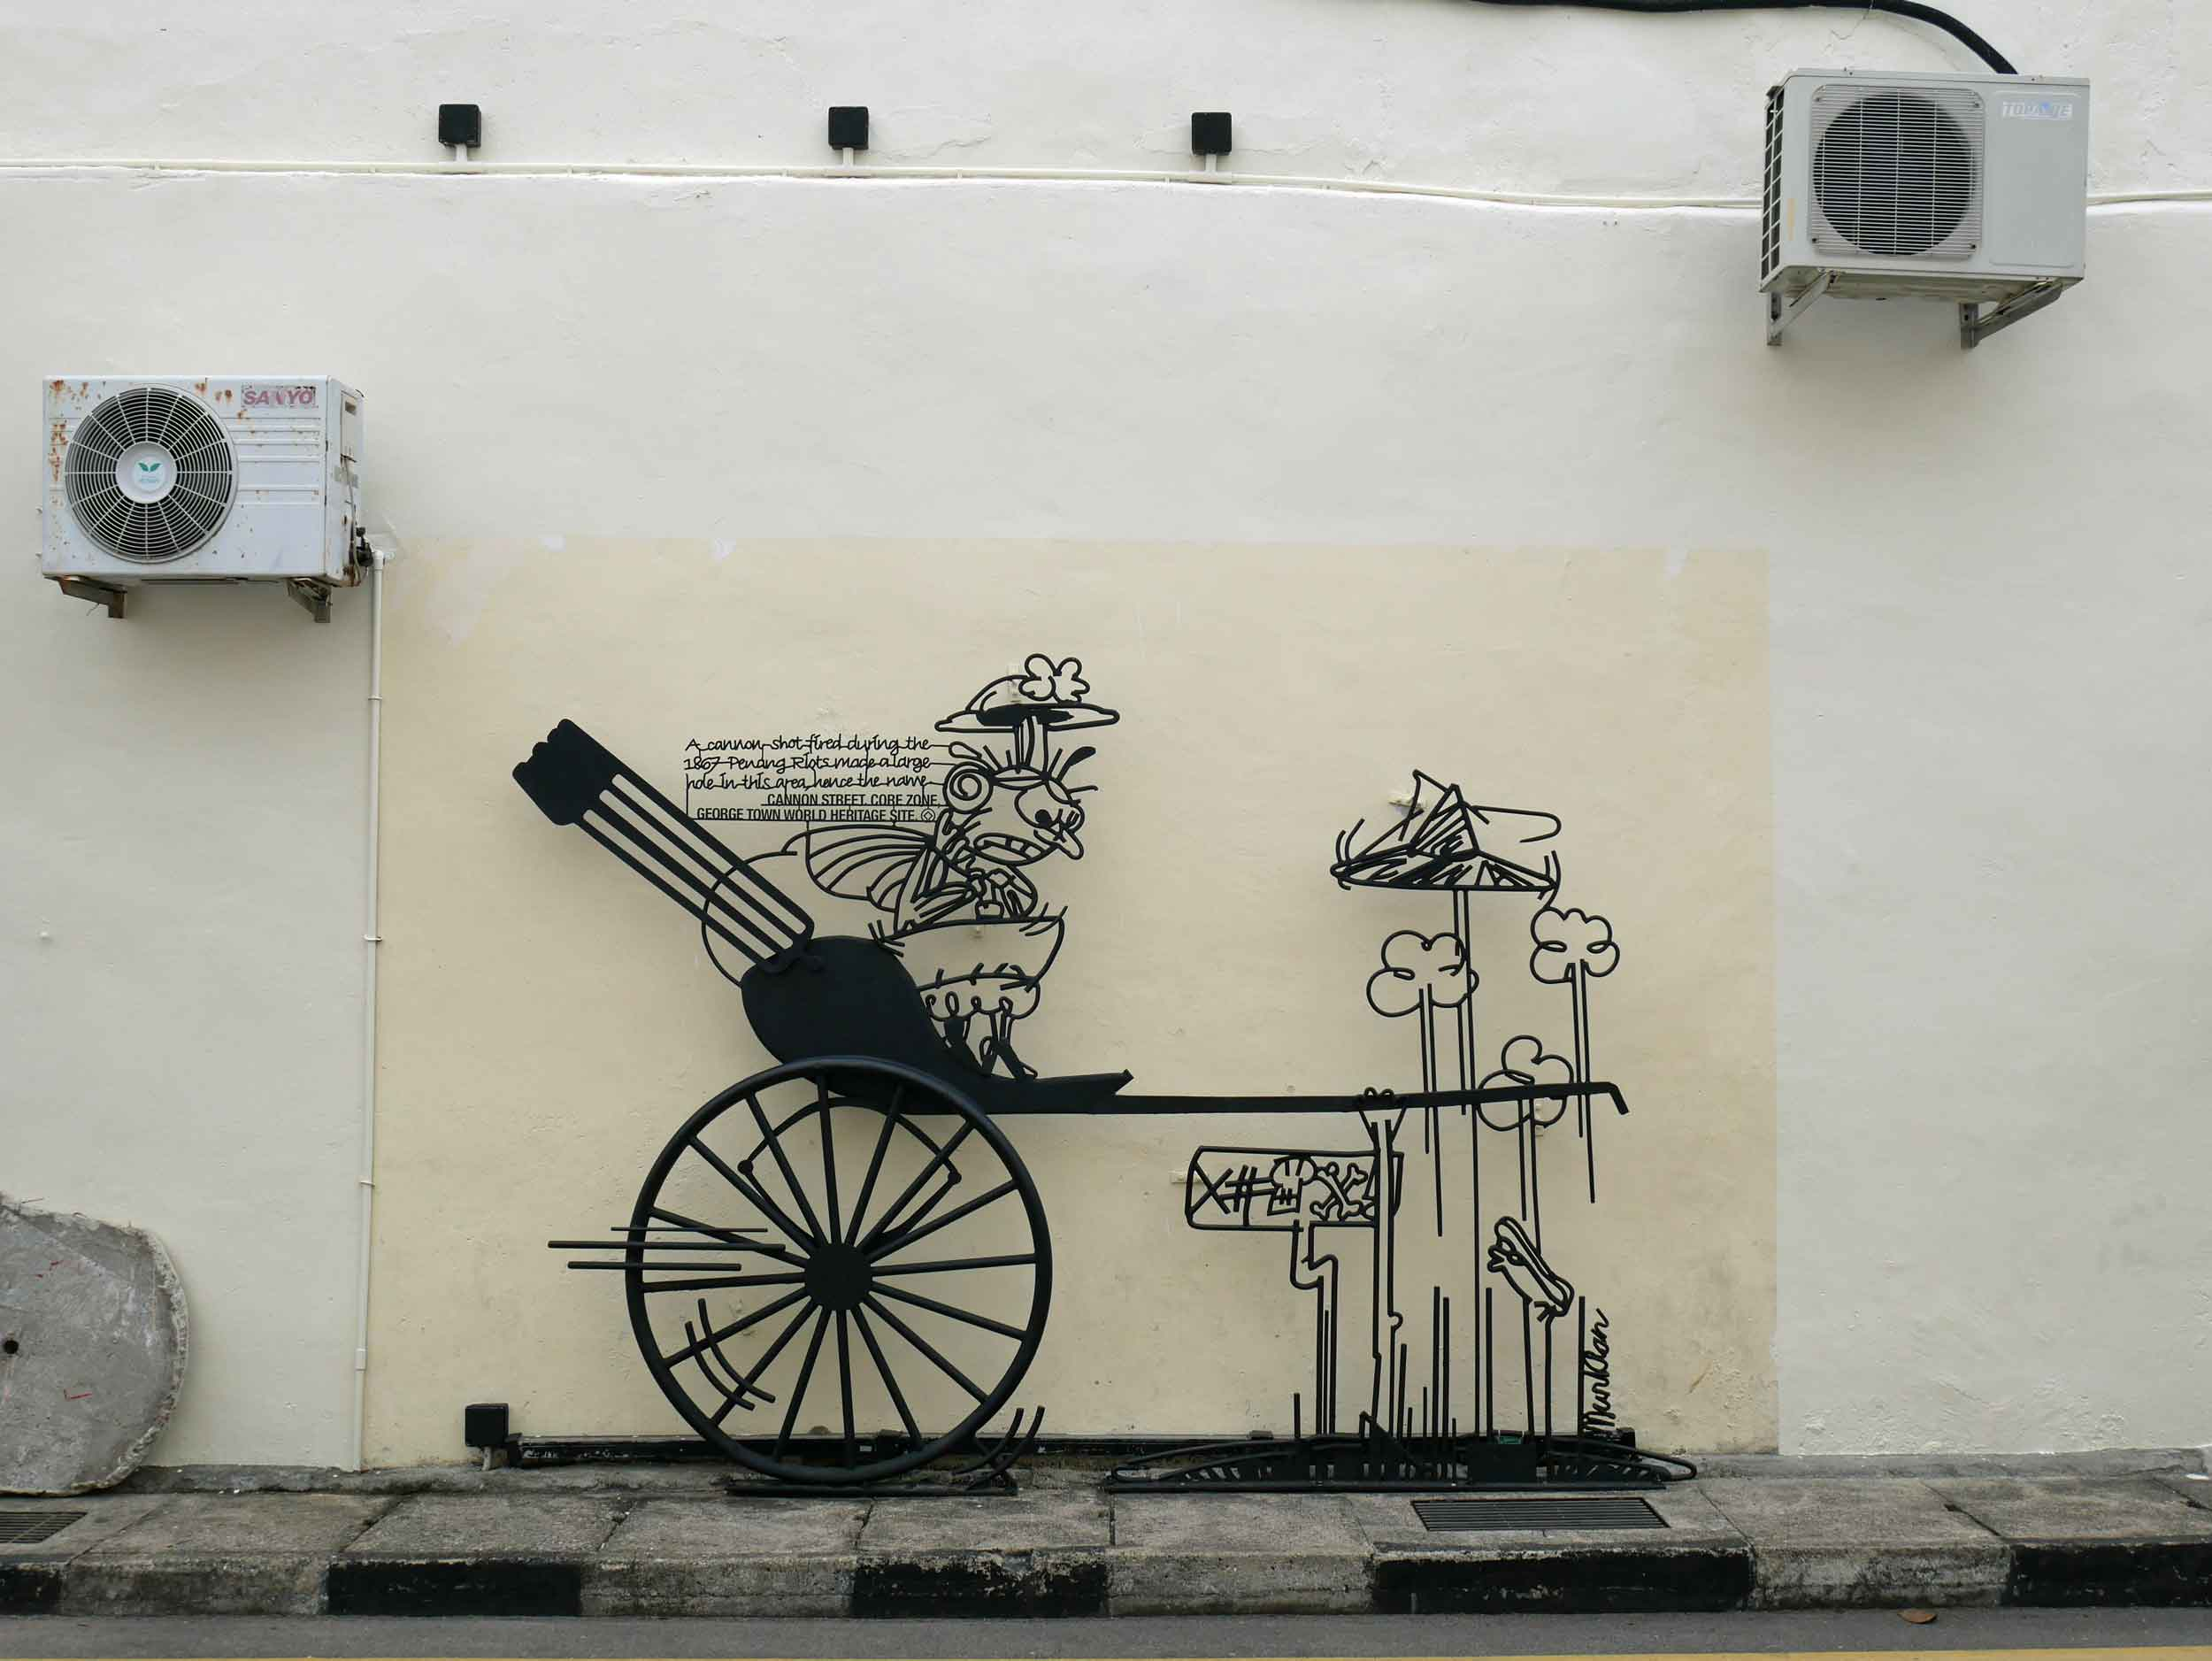 The metal wire artwork, also found on the streets of George Town, is cartoon-like with humorous observations about Penang culture.